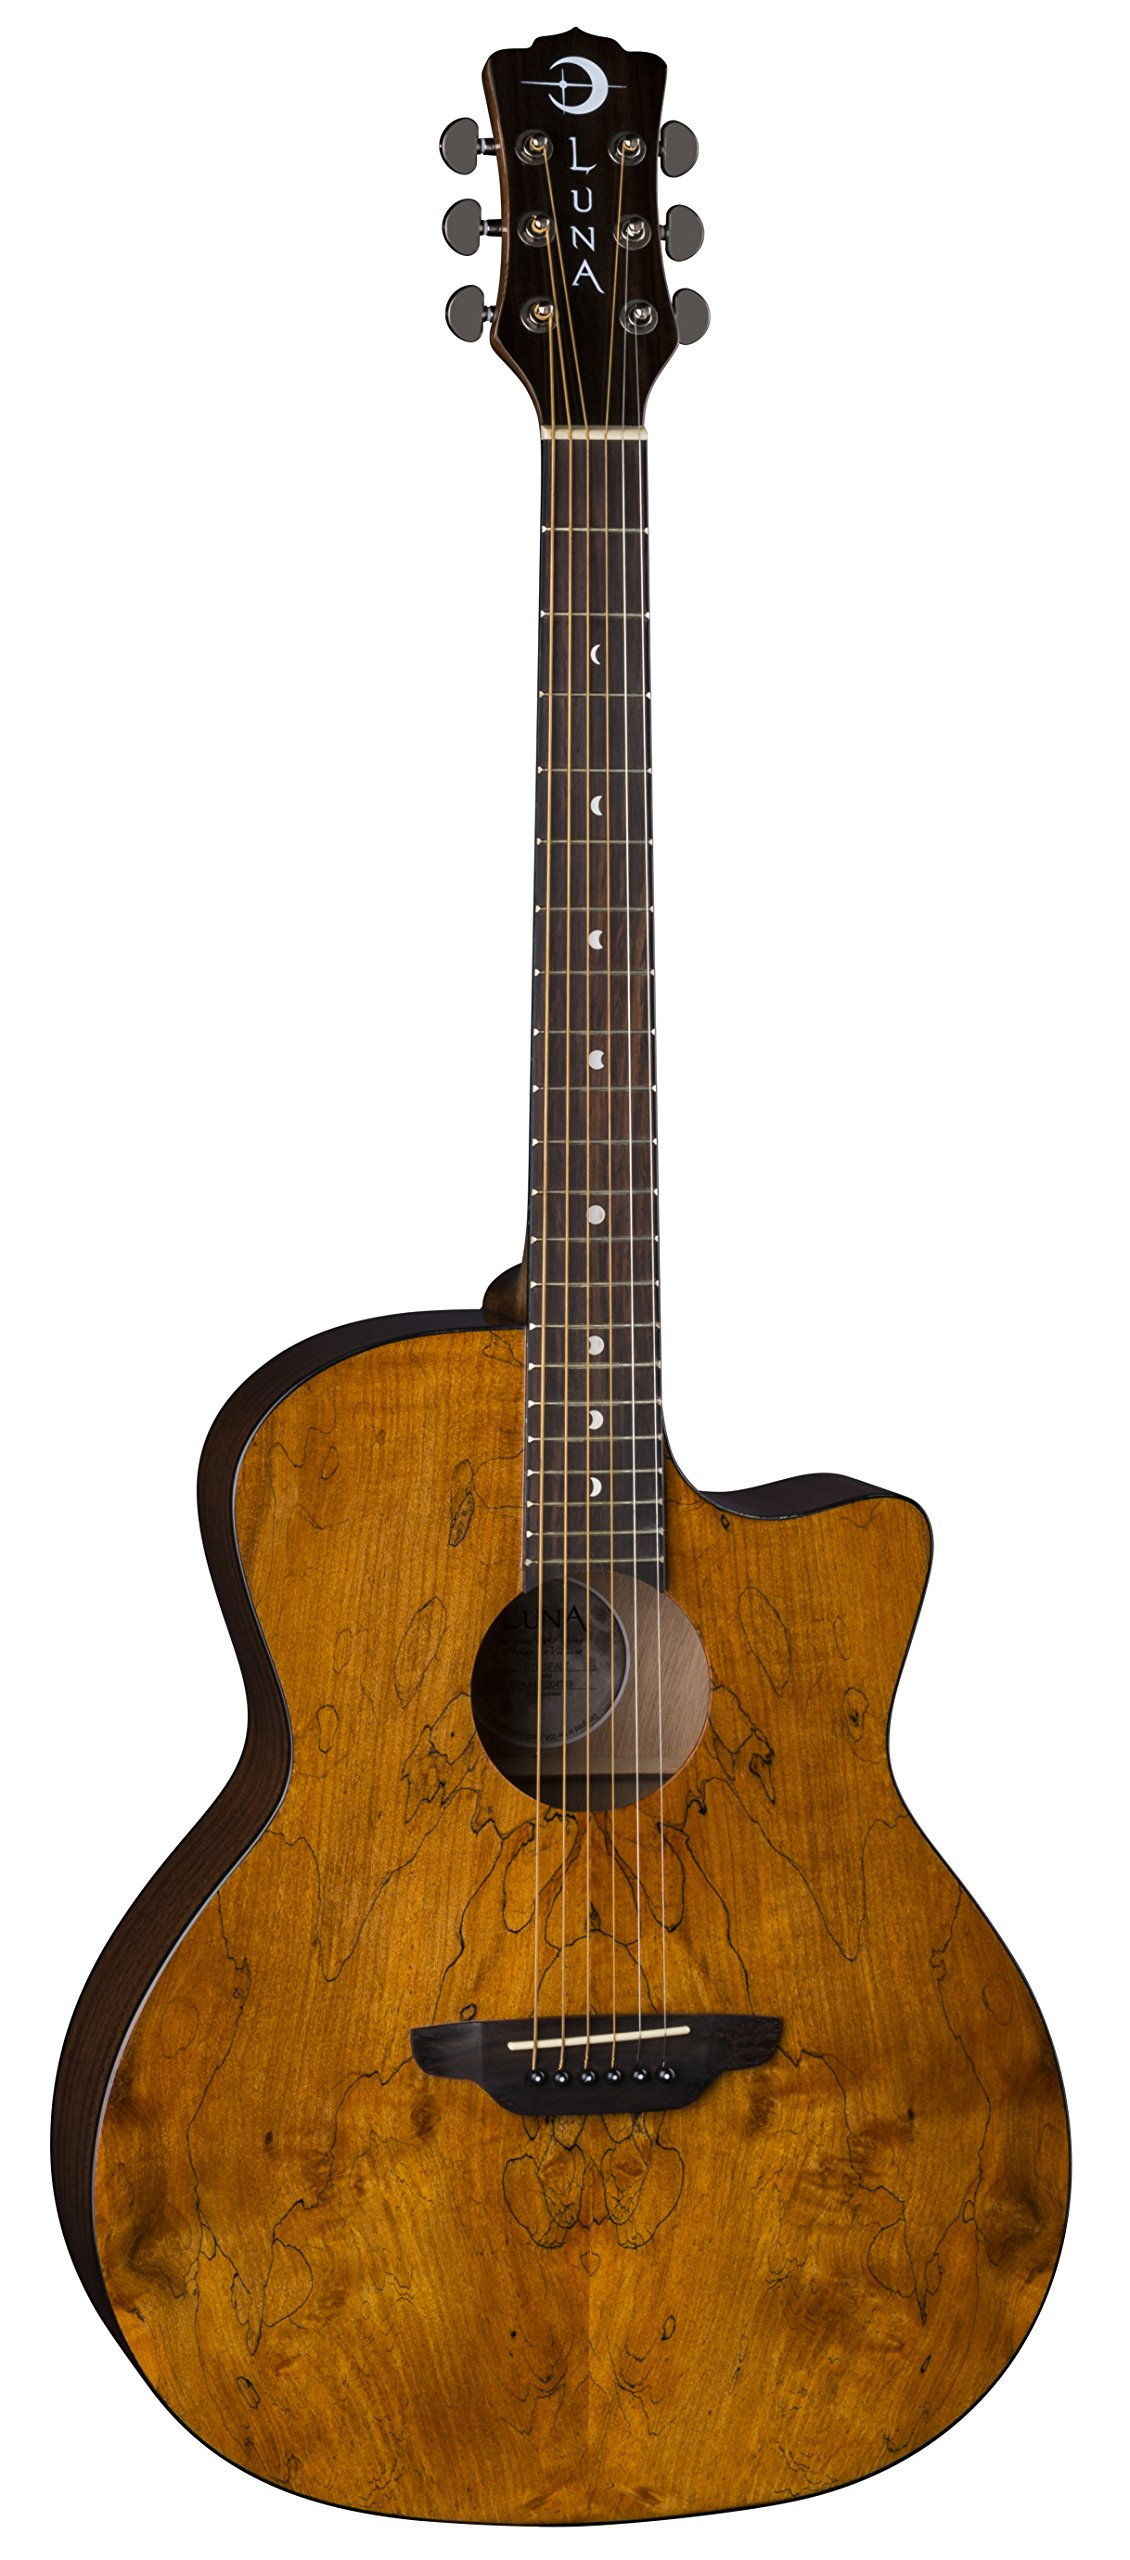 Luna Gypsy Grand Auditorium Acoustic Guitar, Exotic Spalt by Luna Guitars